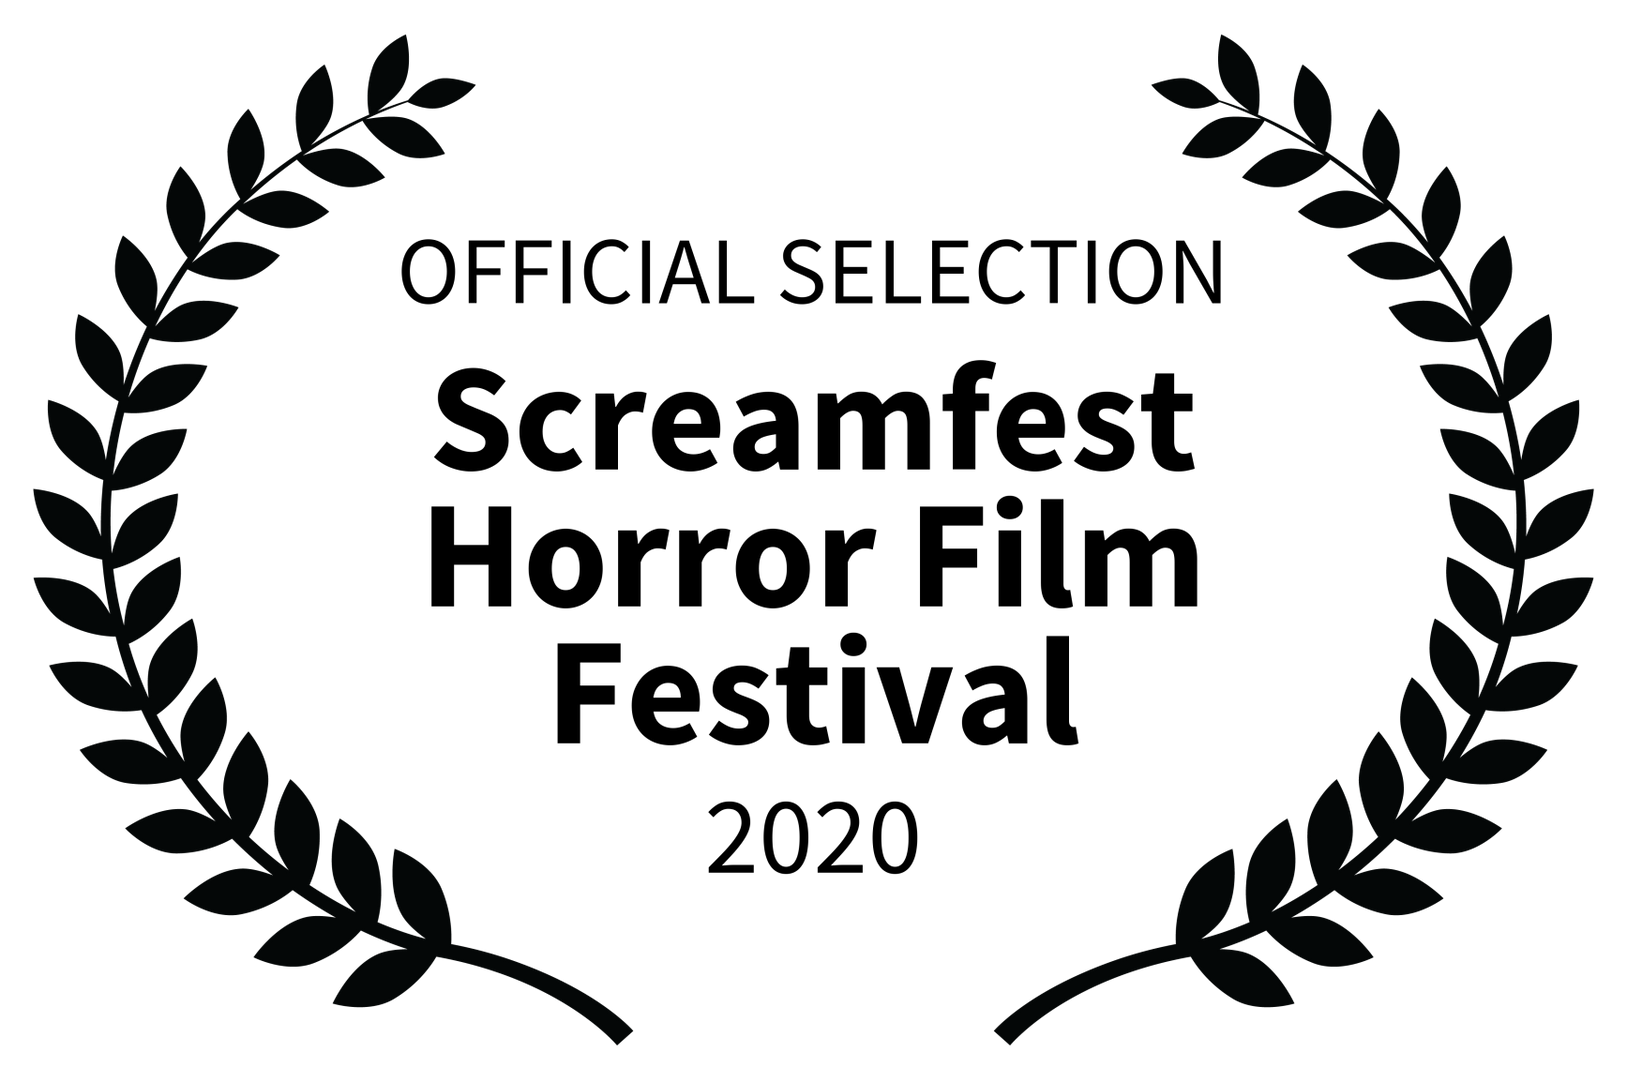 OFFICIAL SELECTION - Screamfest Horror F